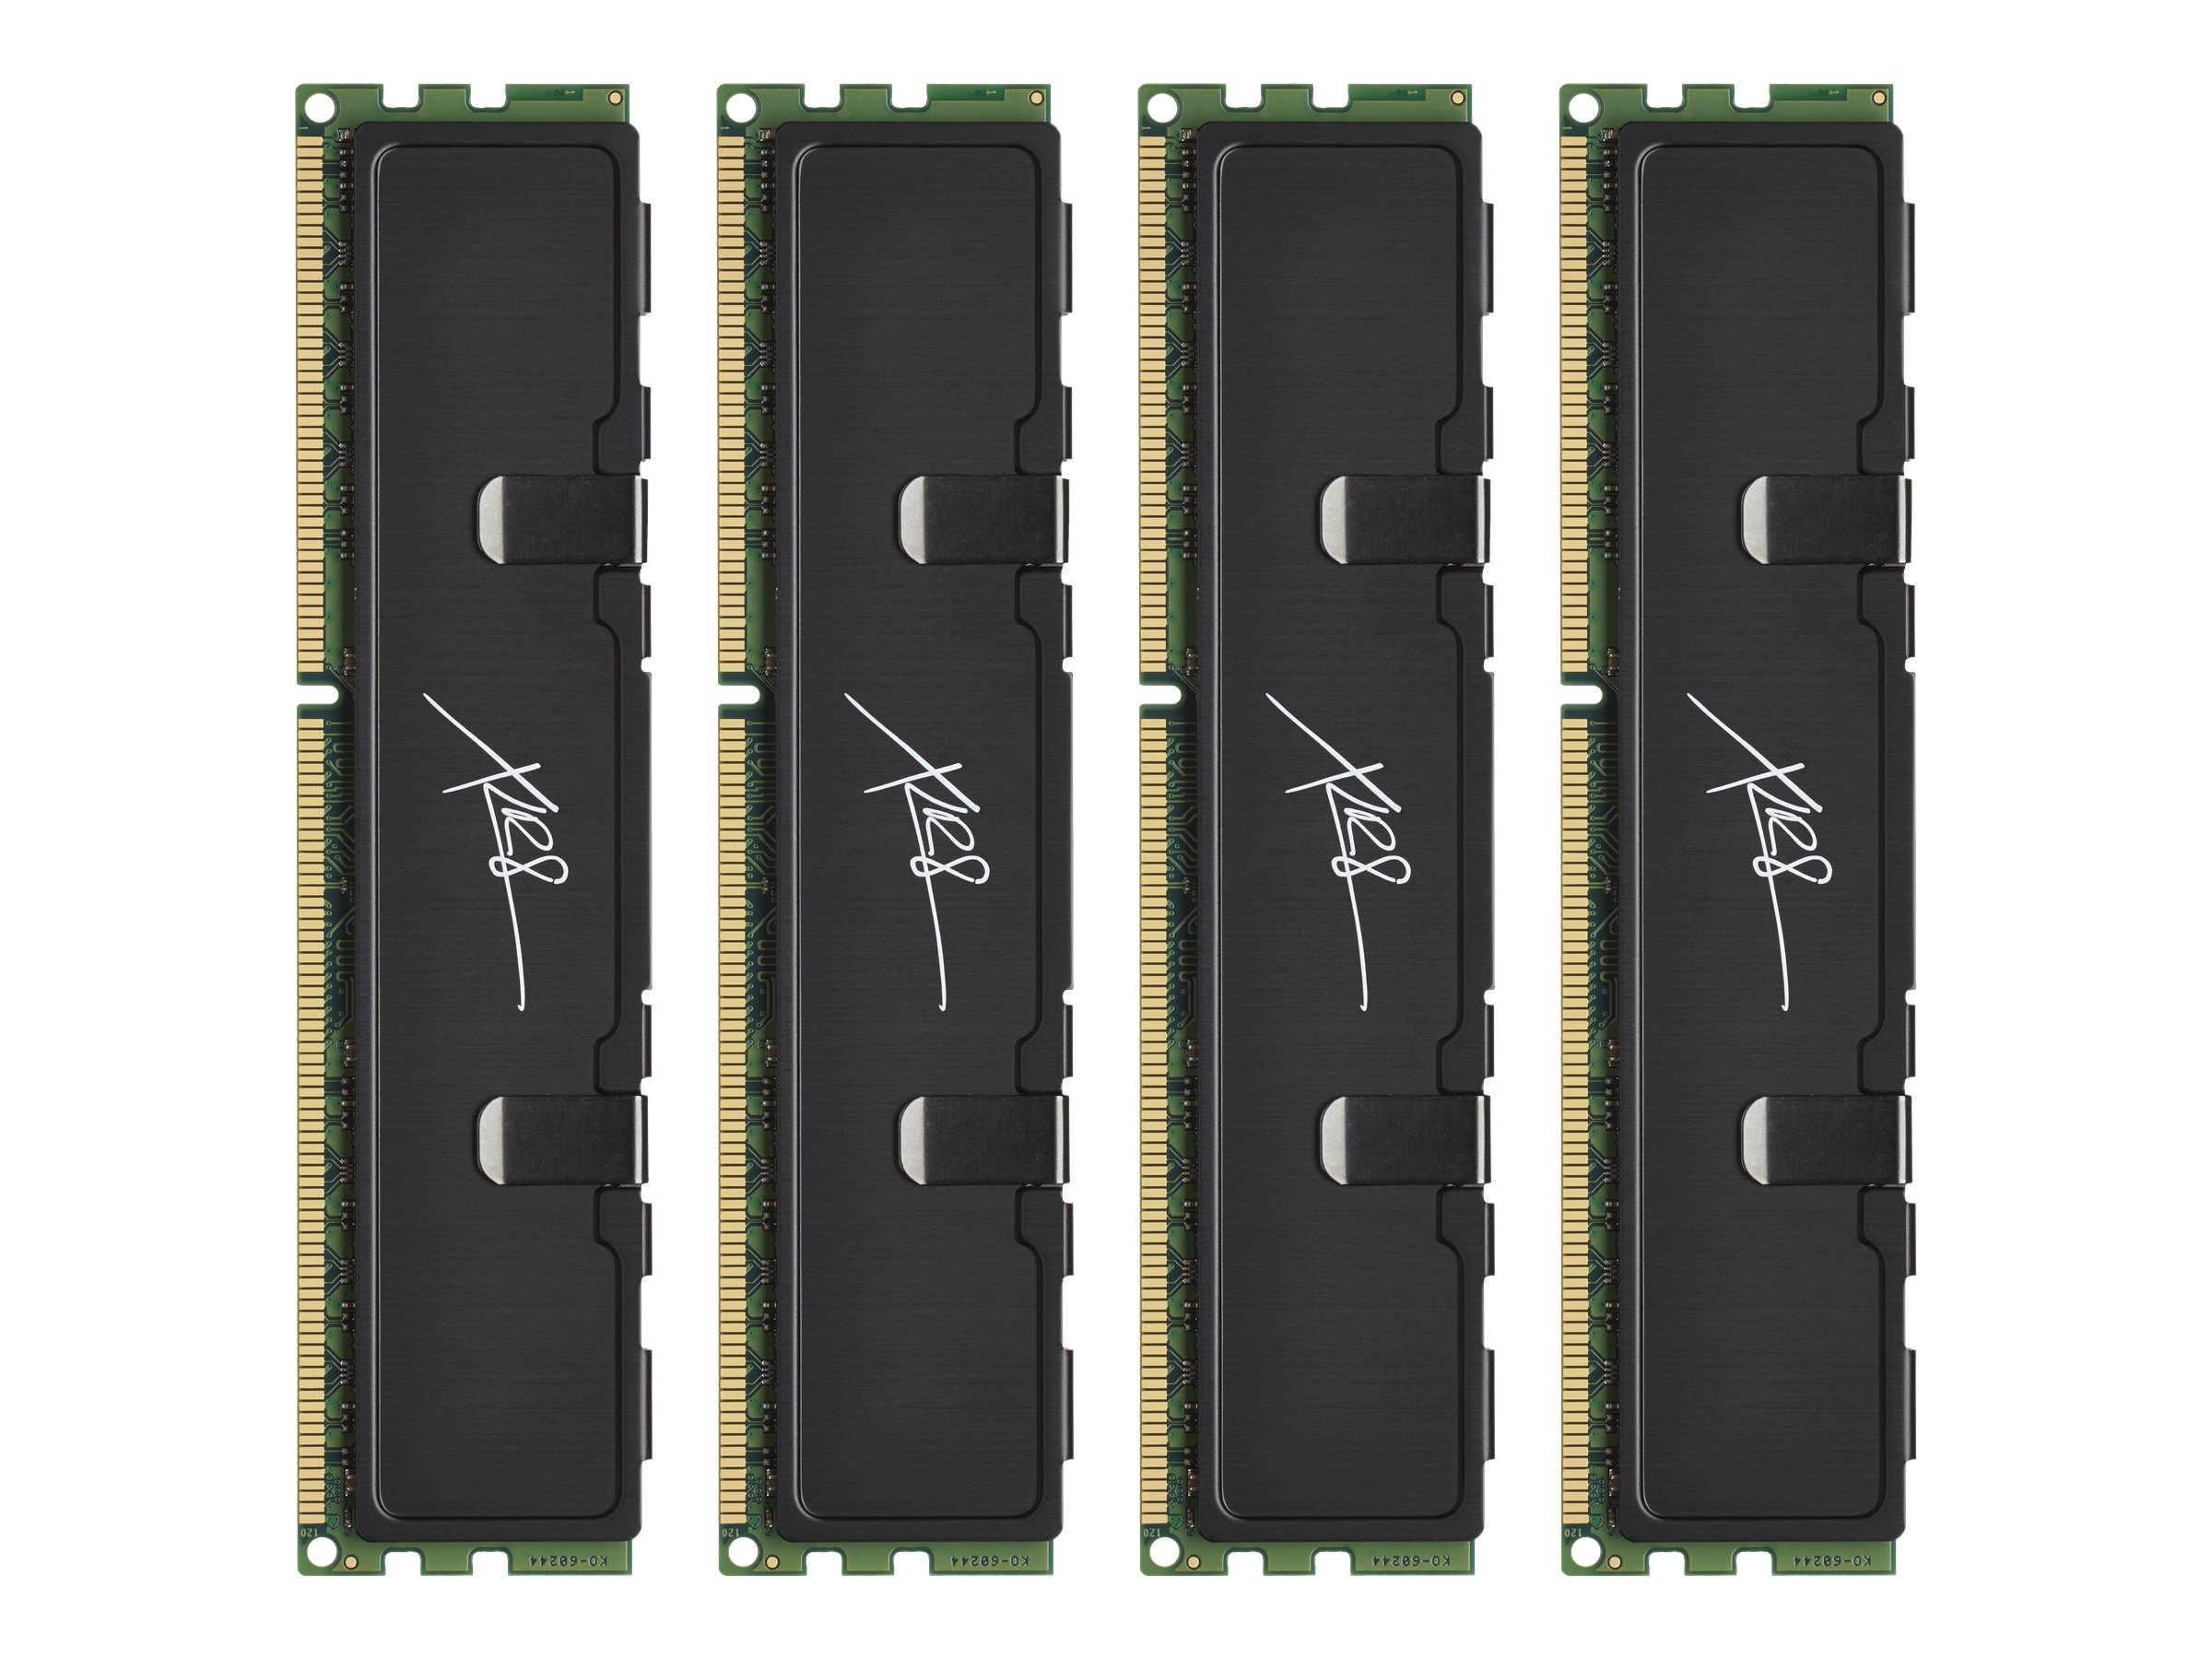 PNY 16GB PC3-12800 240-pin DDR3 SDRAM DIMM Kit